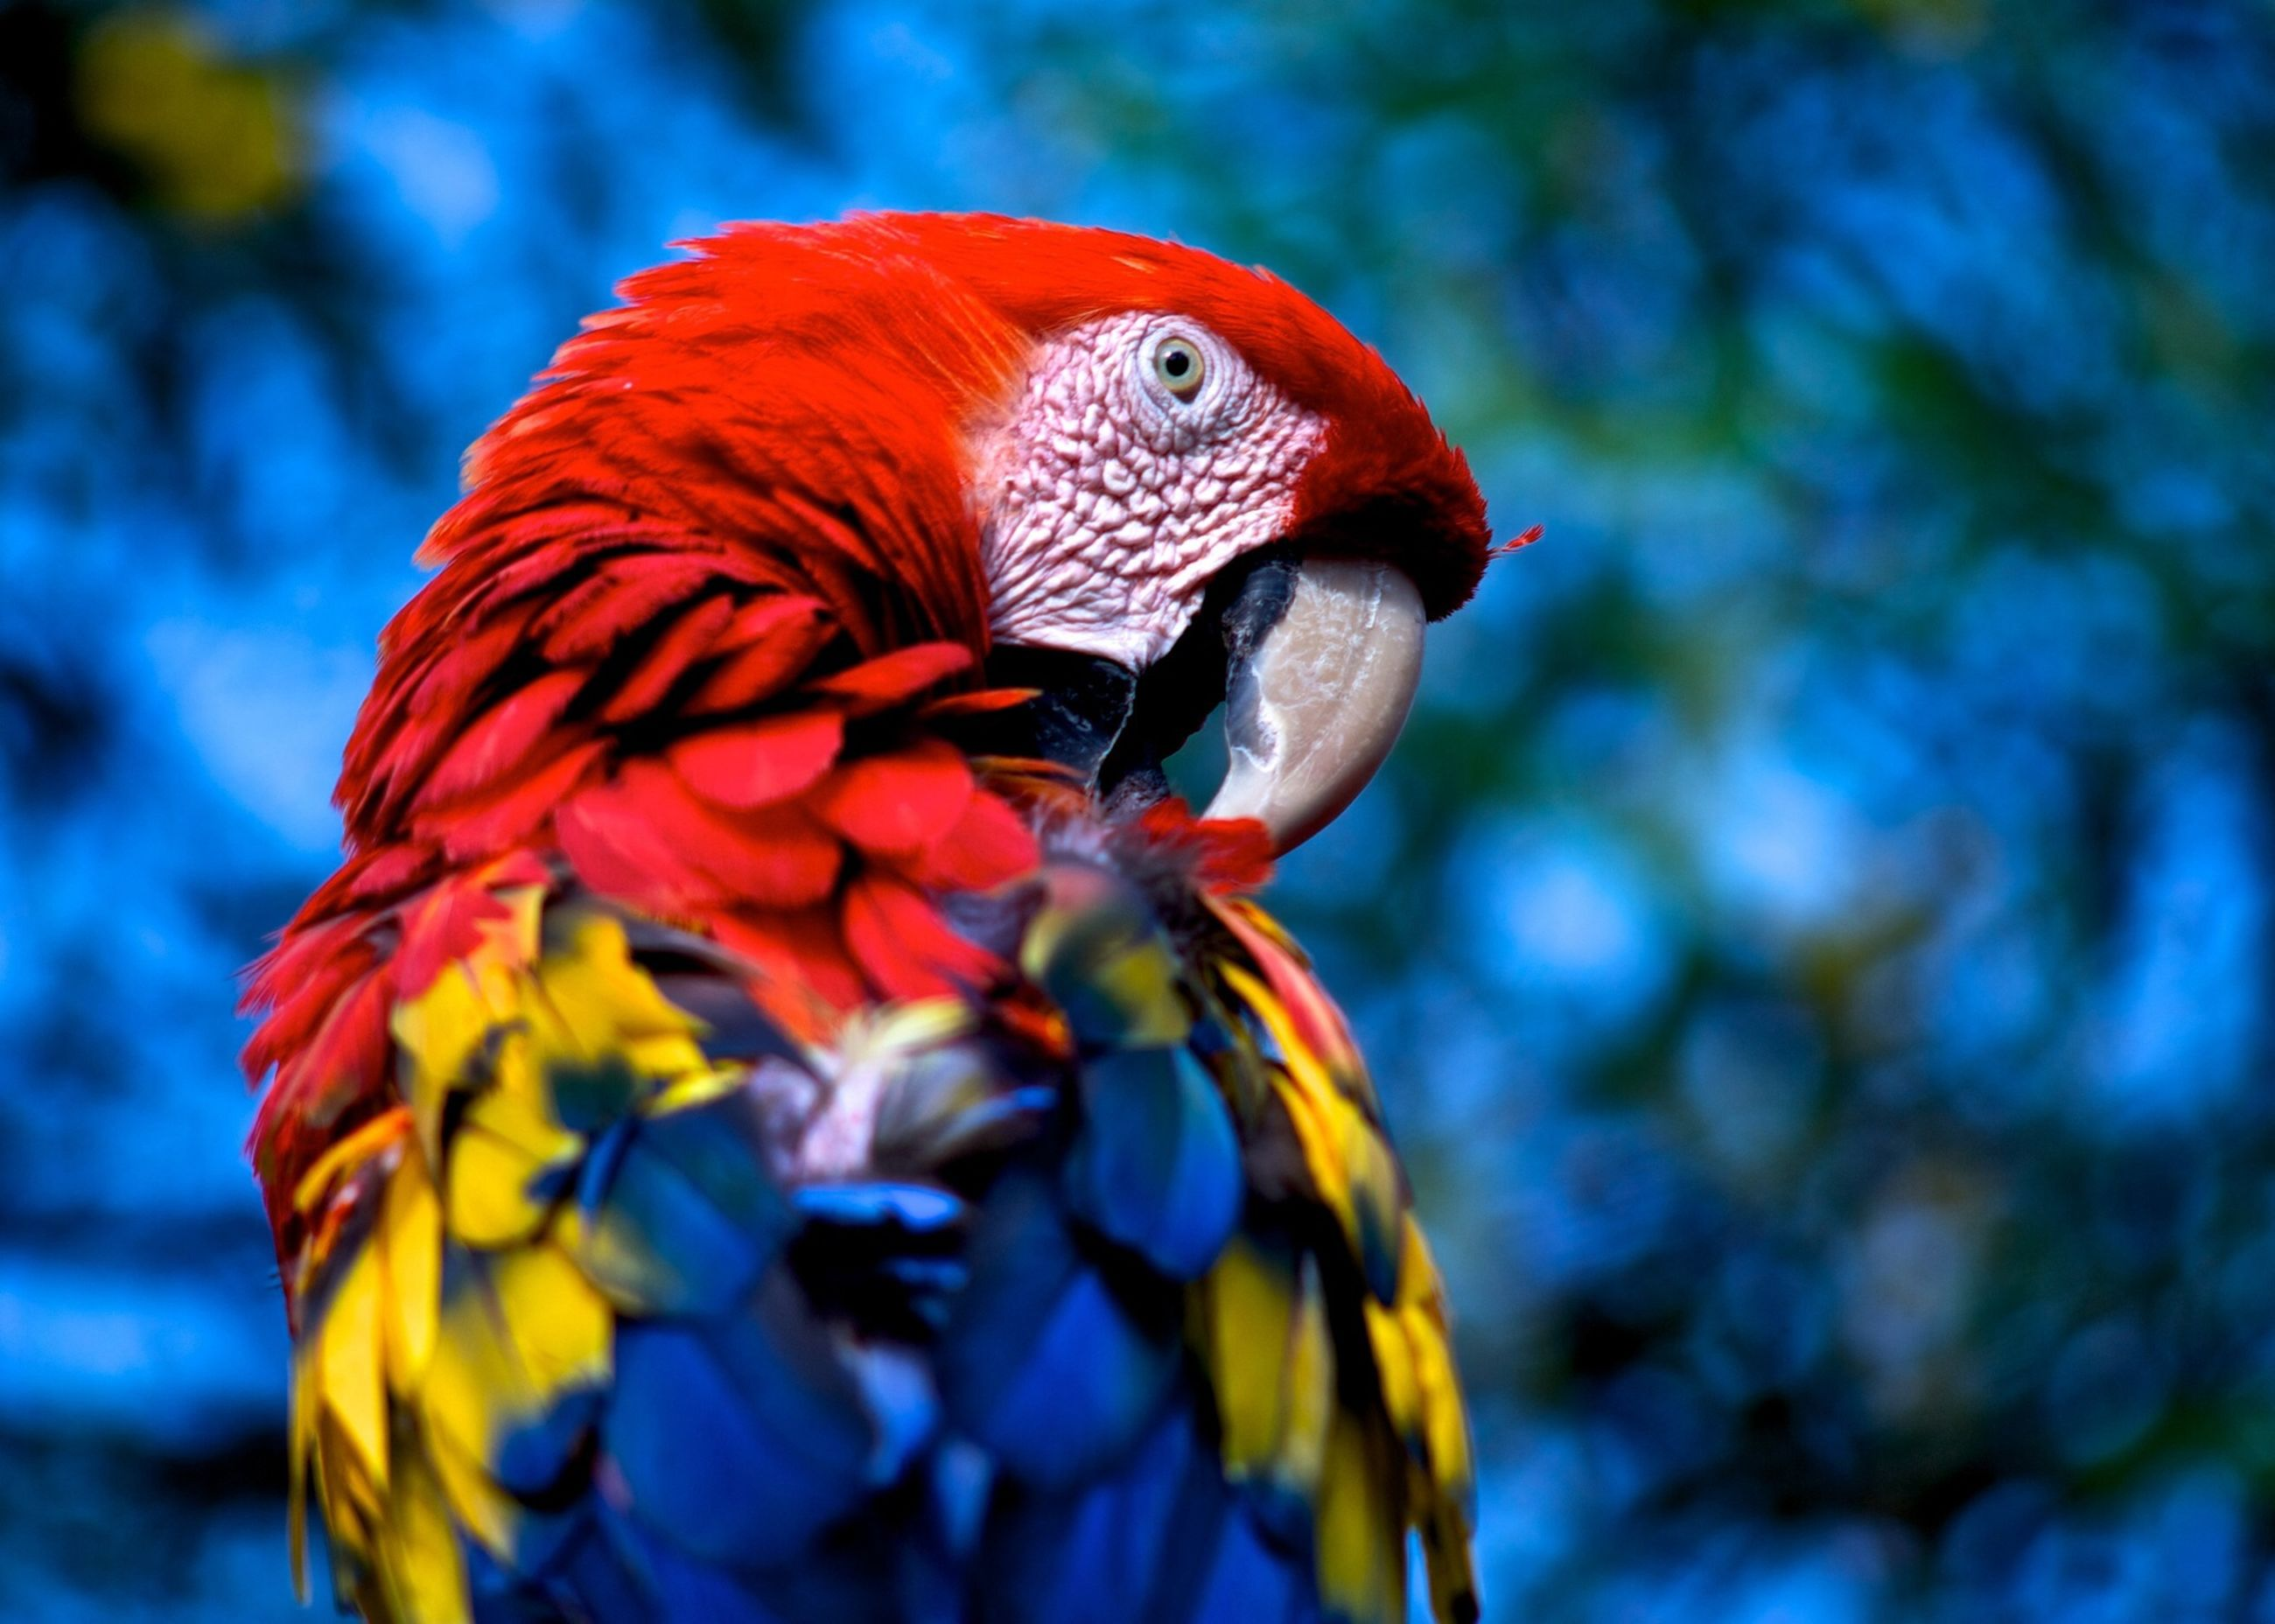 animal themes, animals in the wild, one animal, wildlife, bird, focus on foreground, orange color, beak, close-up, multi colored, beauty in nature, nature, no people, outdoors, day, selective focus, perching, zoology, parrot, side view